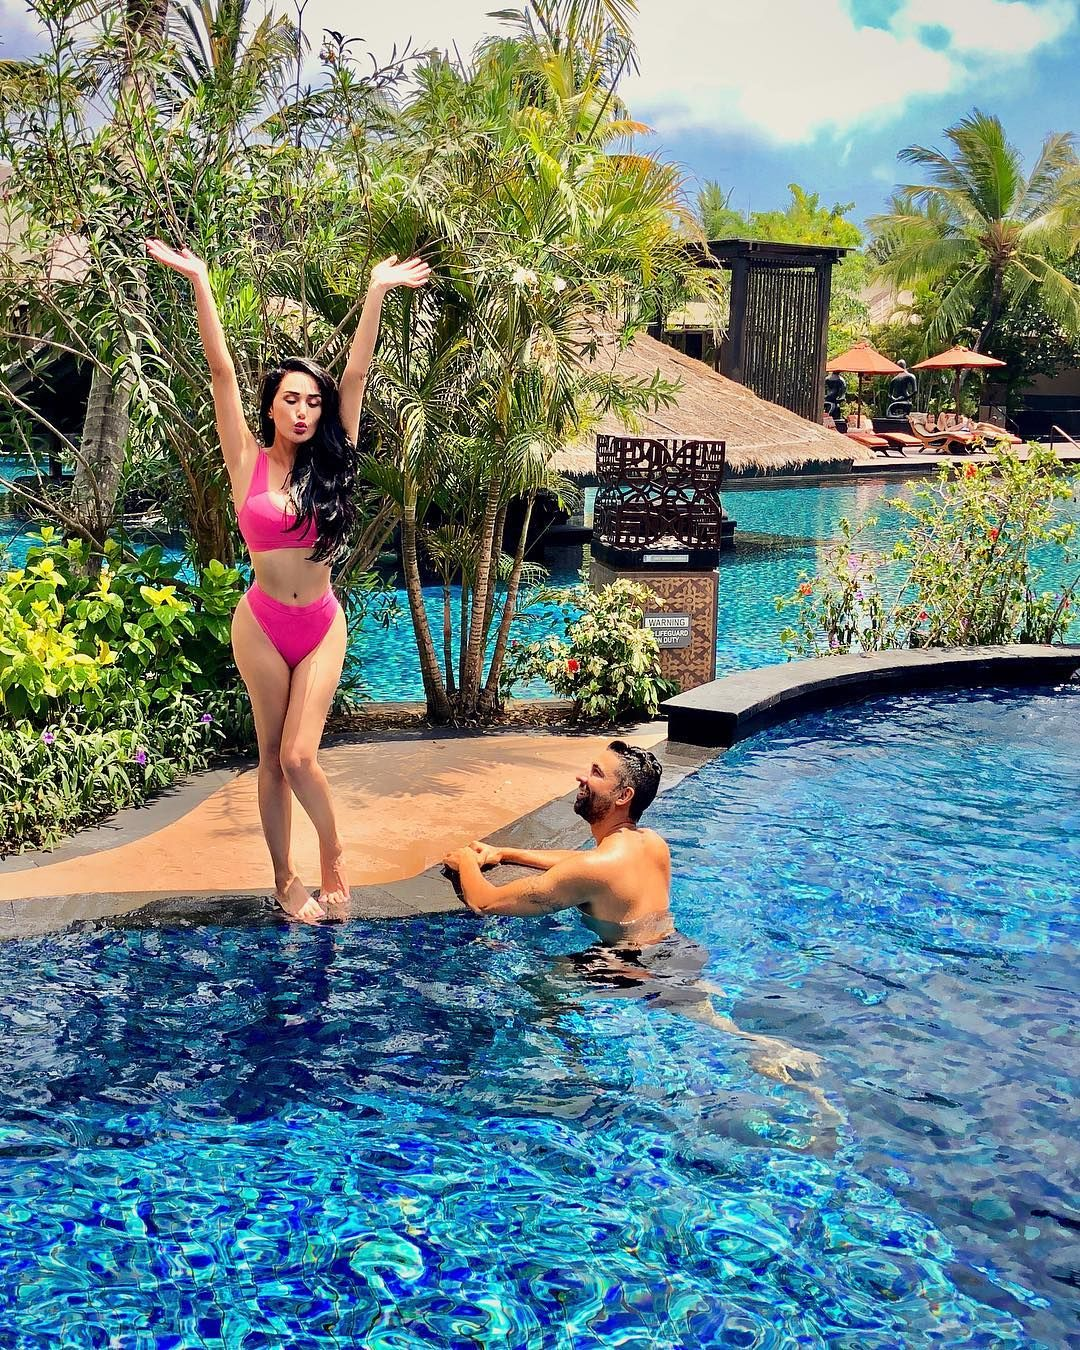 Bali Baby It Has Been On My Bucketlist For So Long Vacation Giveaway Dream Vacations Bali Resort